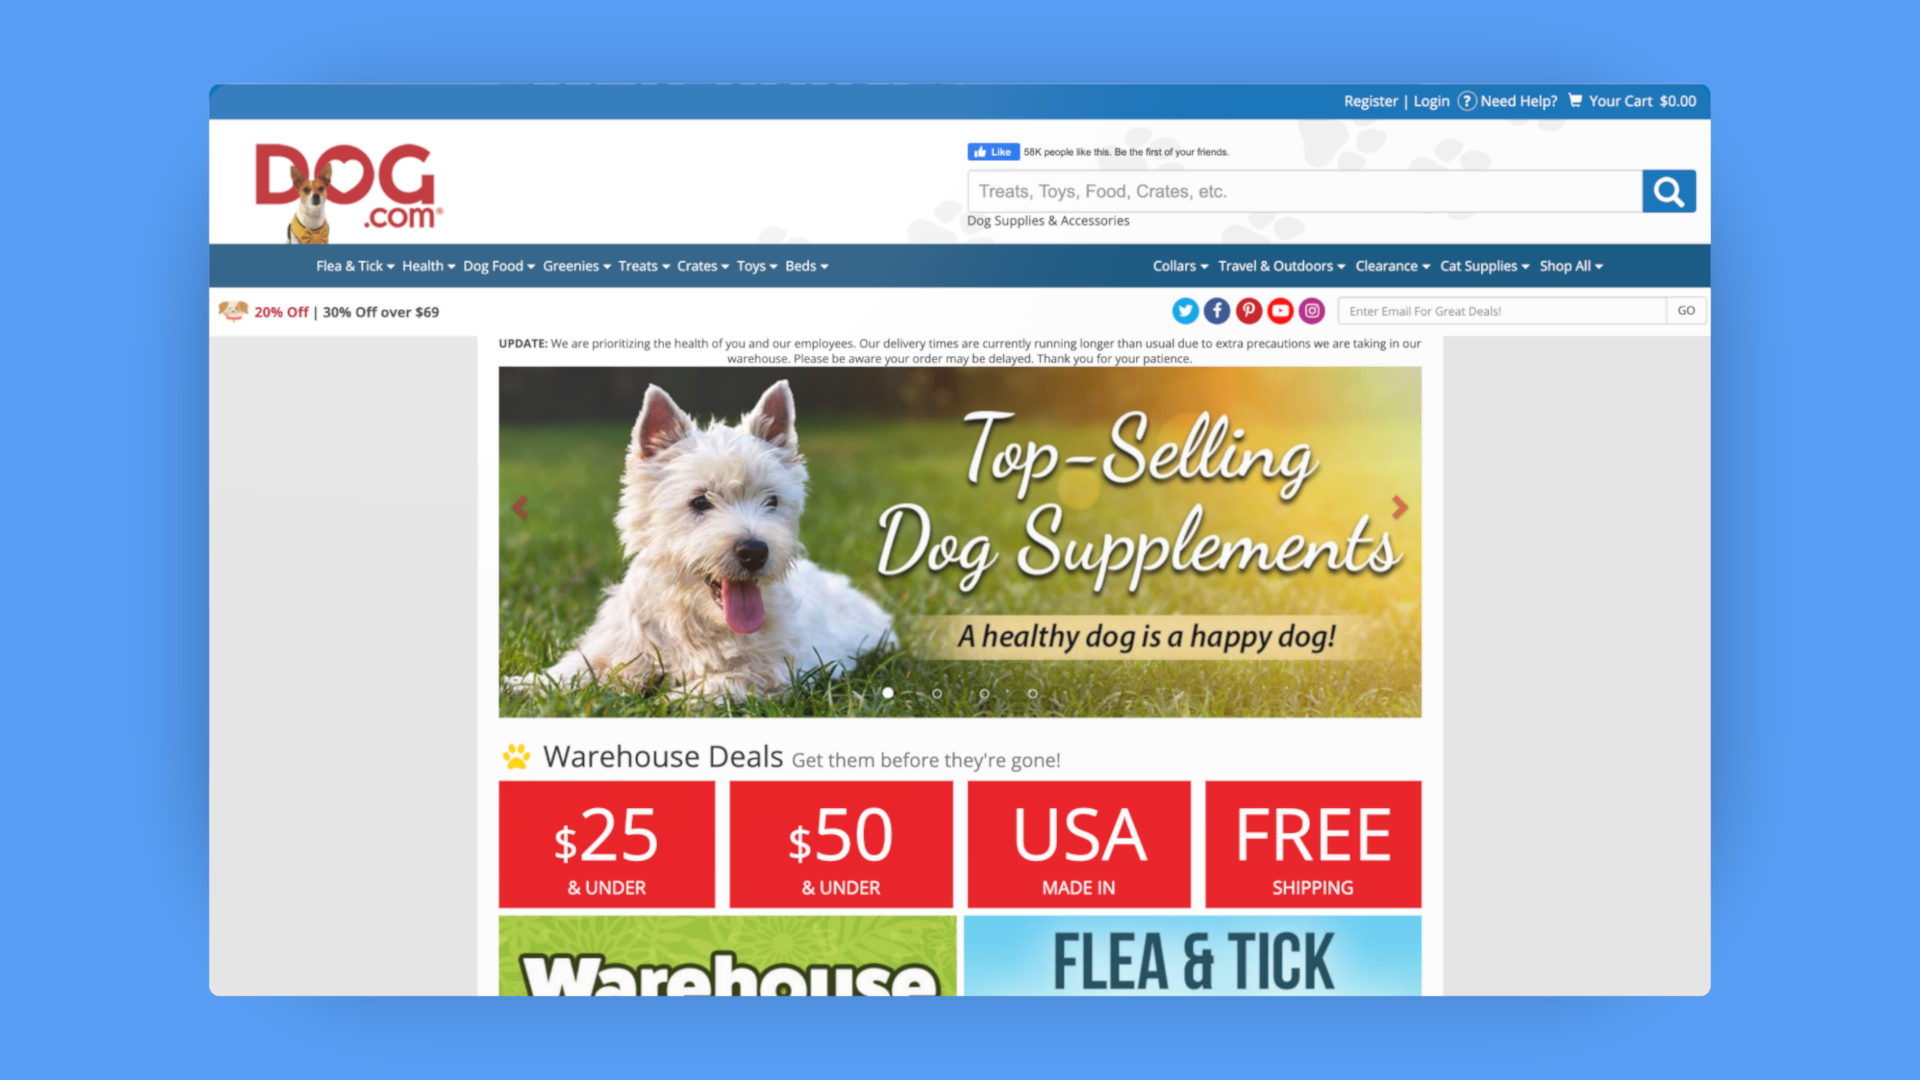 TabCom dog.com website image